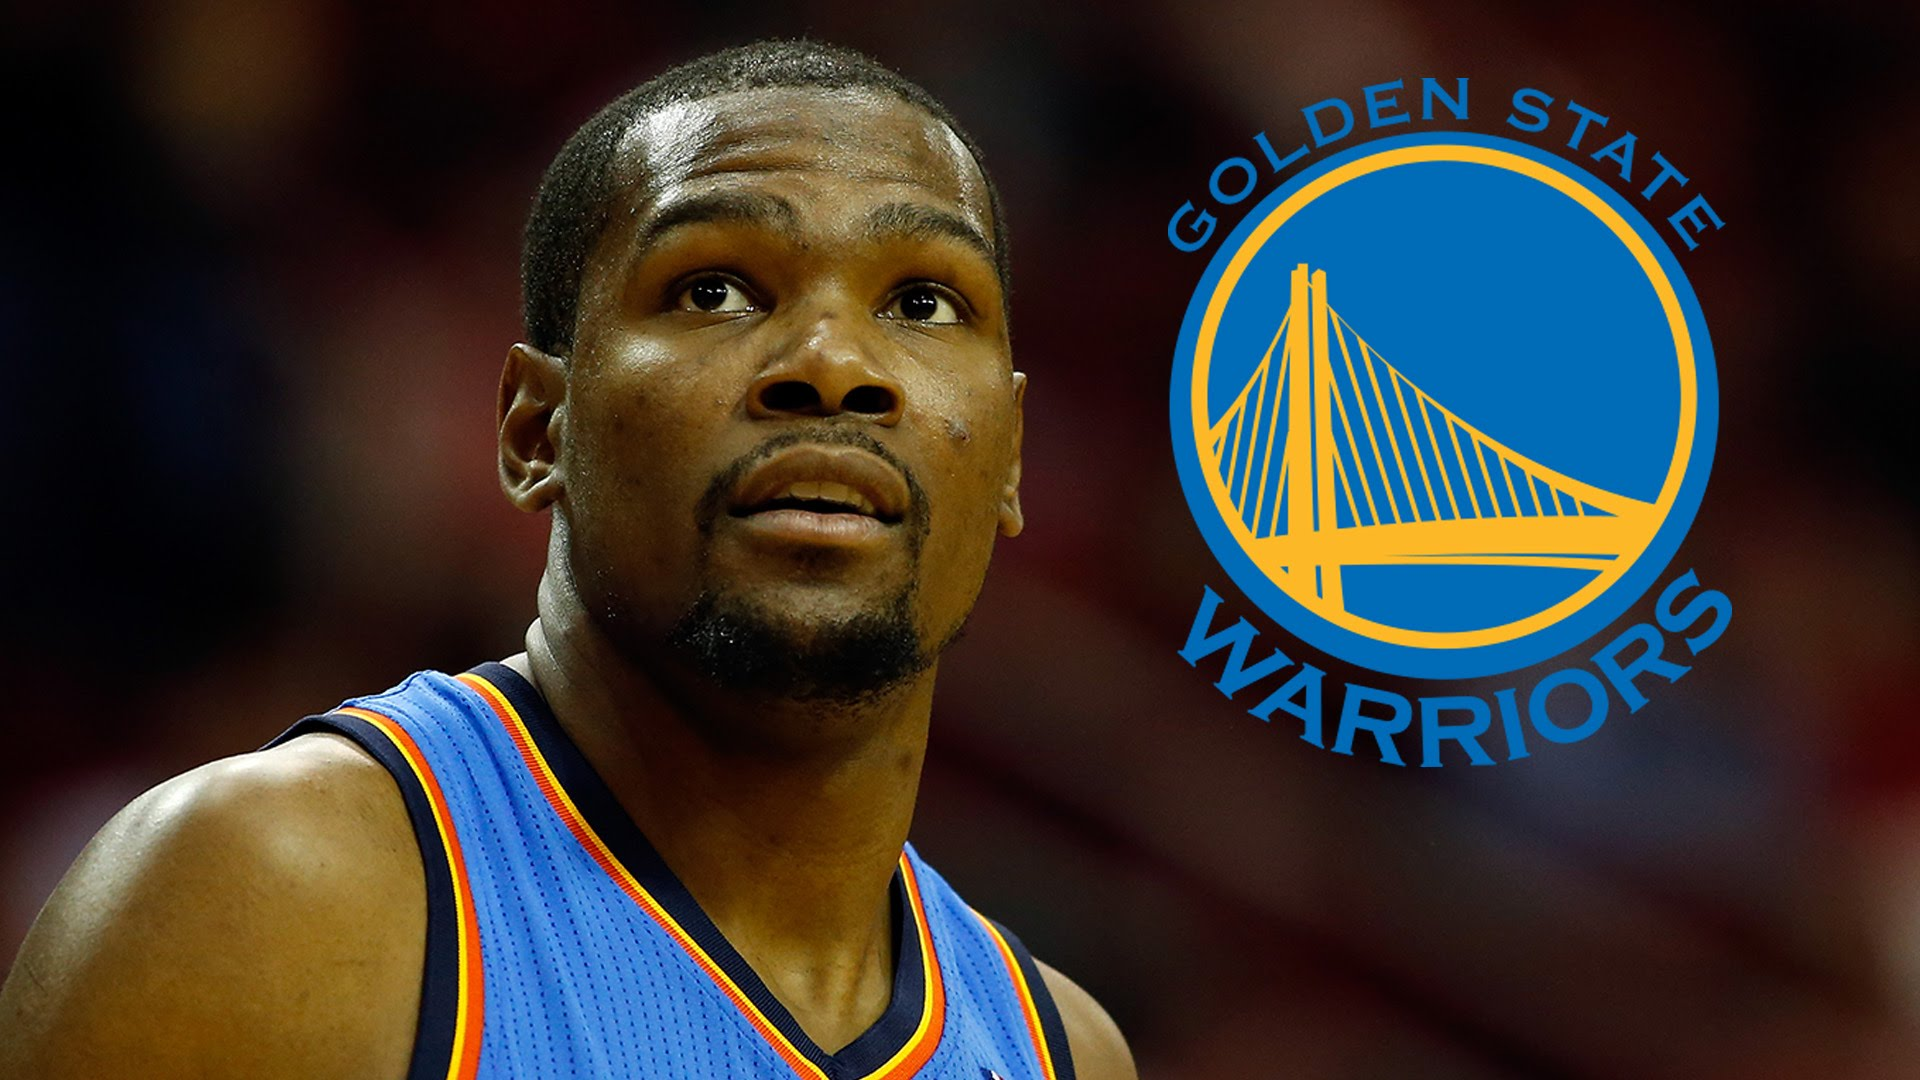 Kevin Durant will sign with the Golden State Warriors